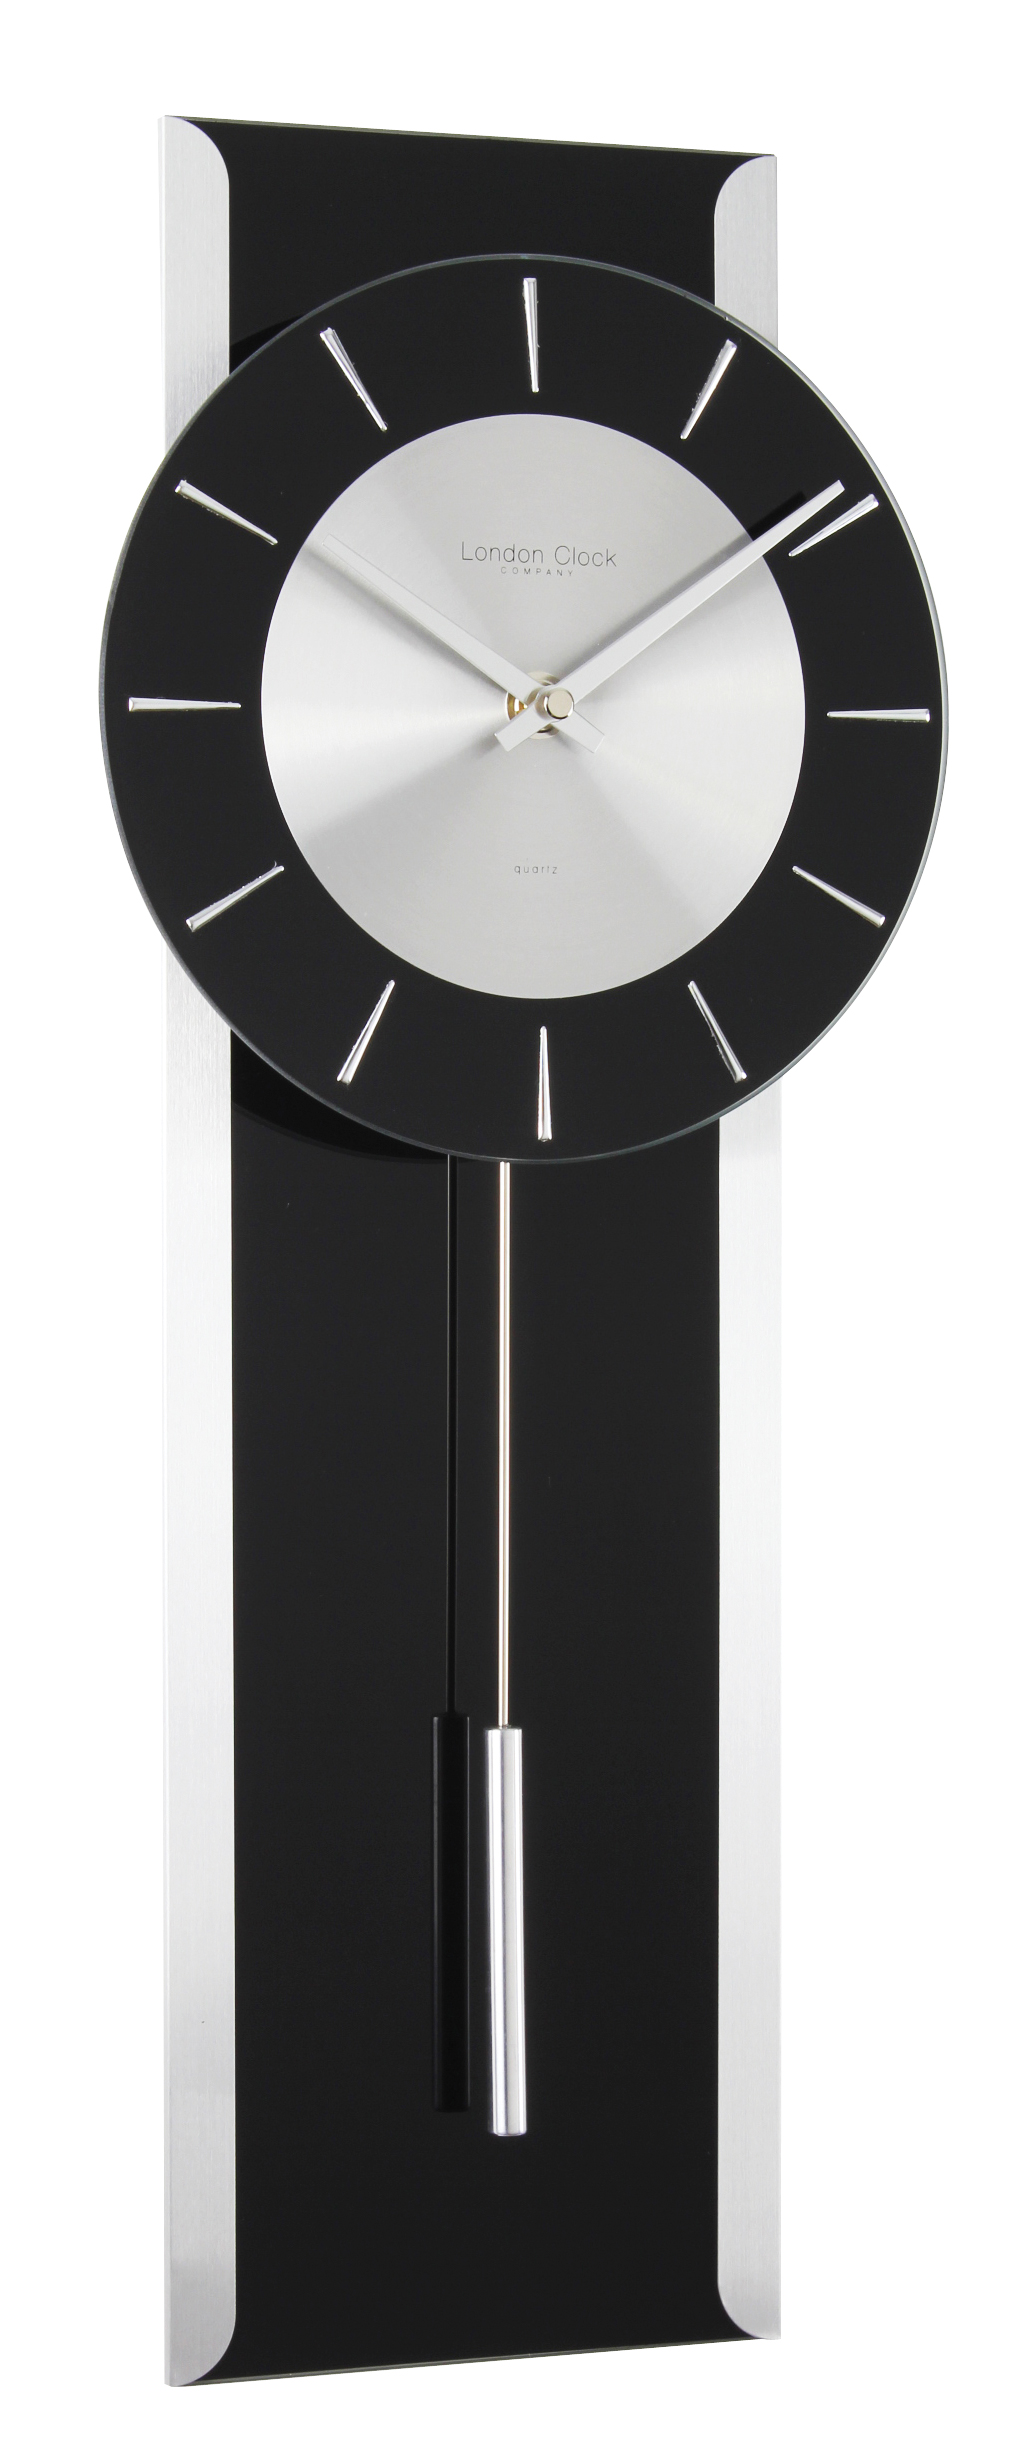 londres soci t d 39 horloge designer tapis moderne. Black Bedroom Furniture Sets. Home Design Ideas